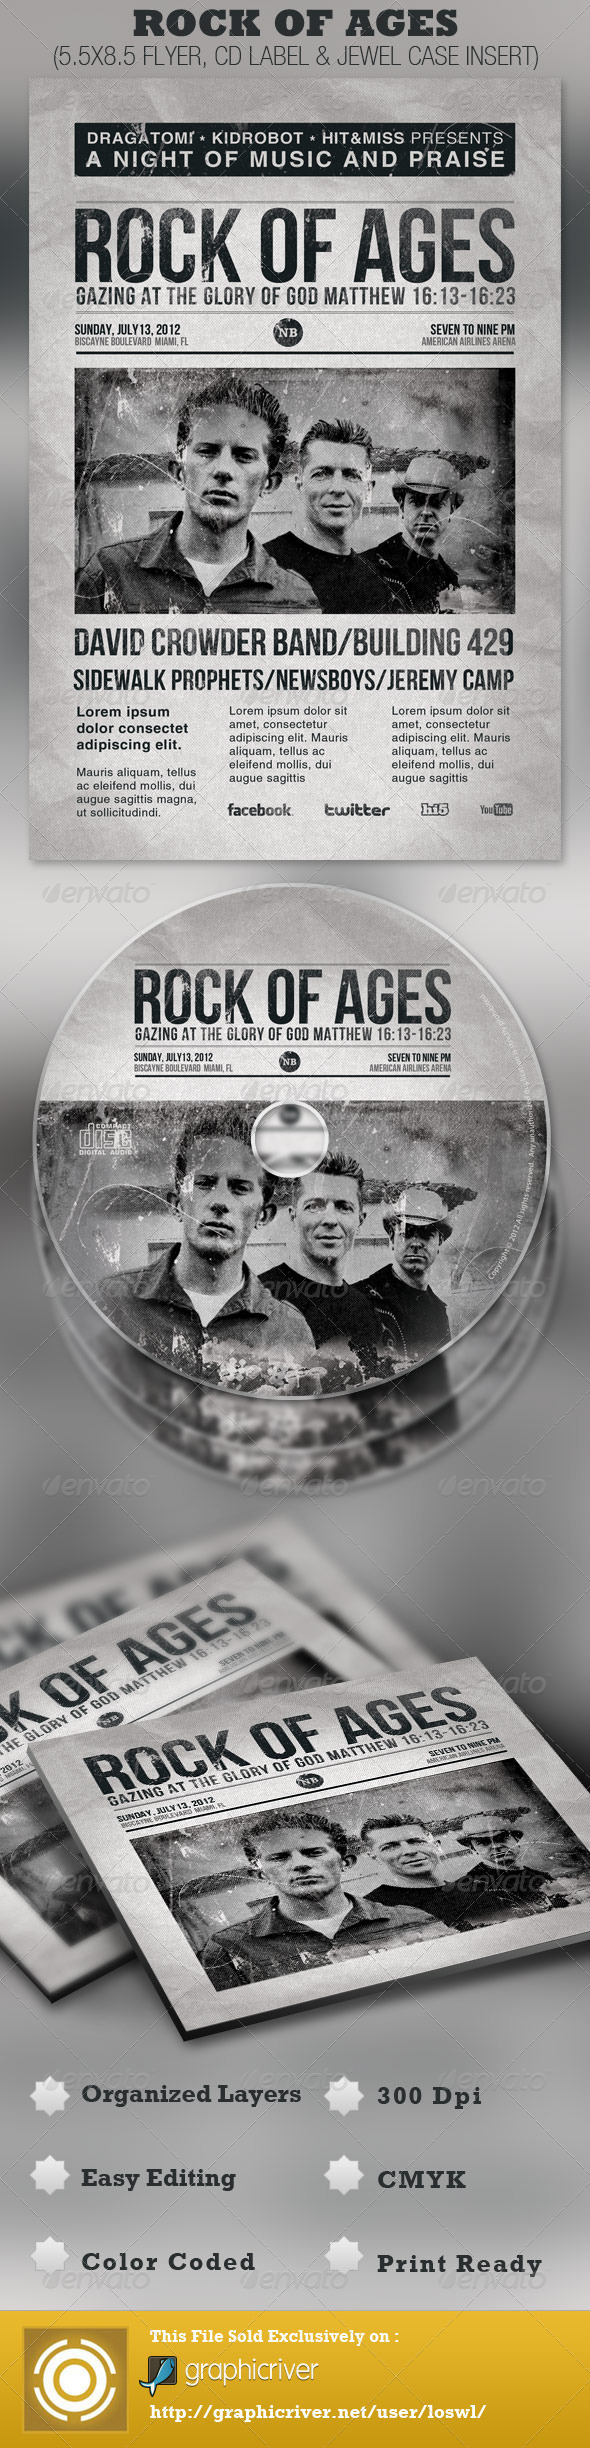 Rock of Ages Church Flyer and CD Template - Church Flyers